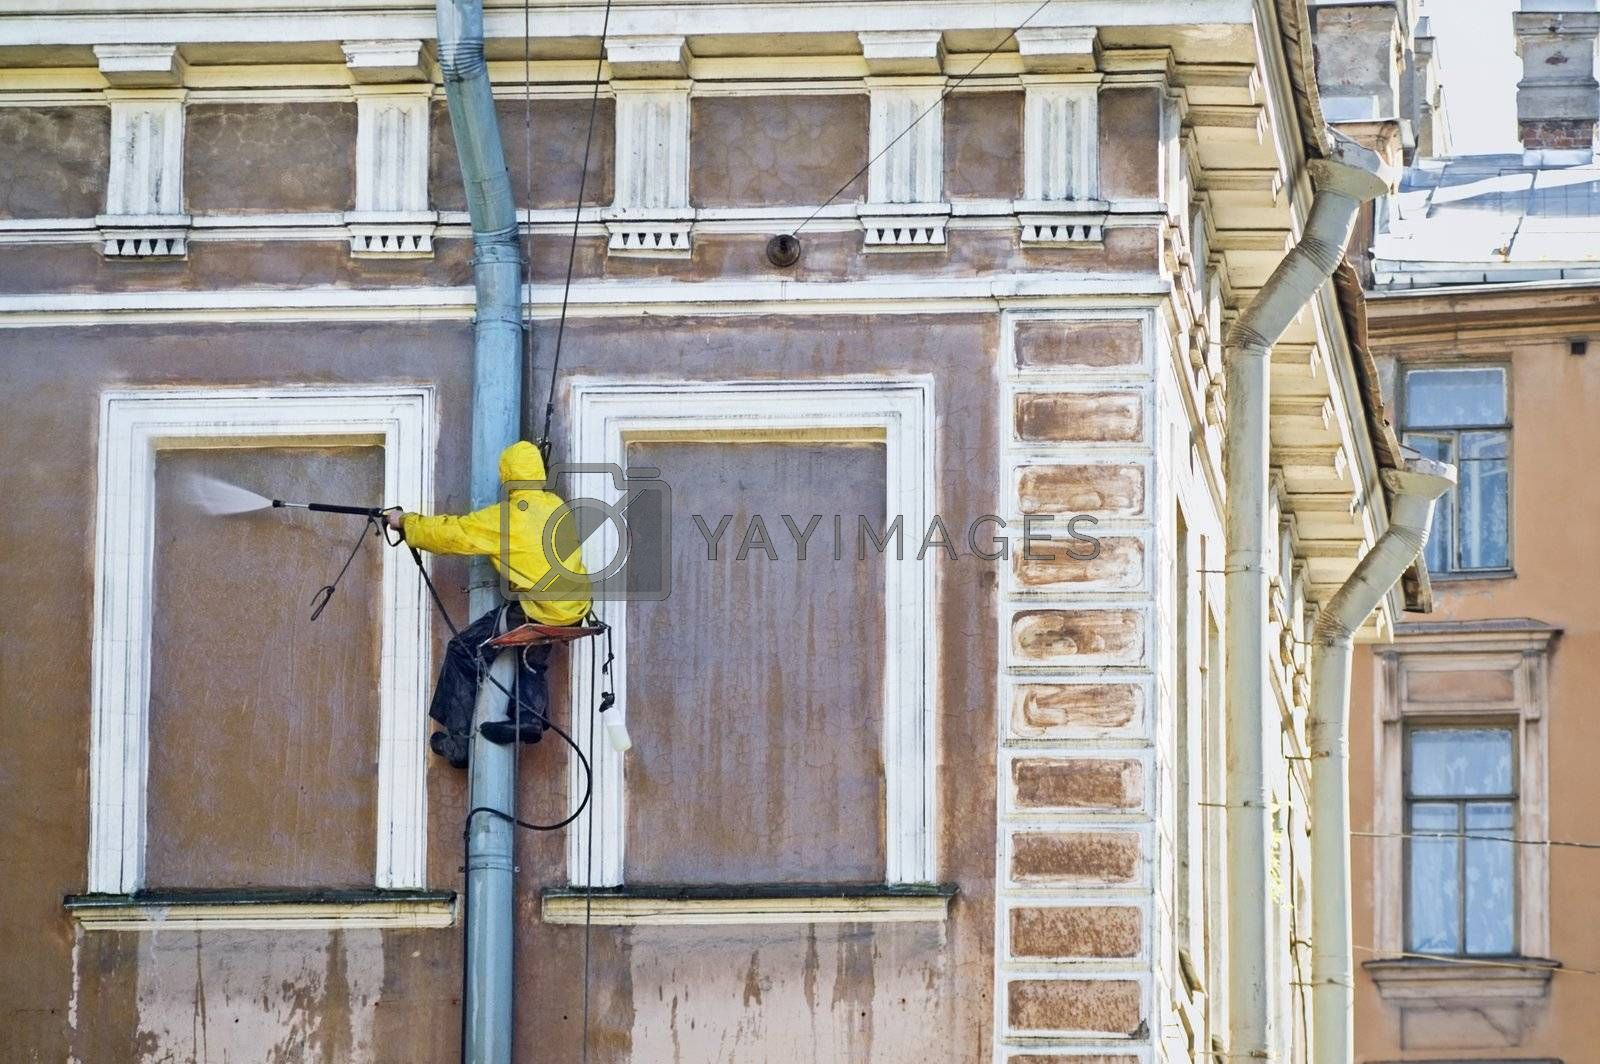 Cleaning service worker washing old building facade